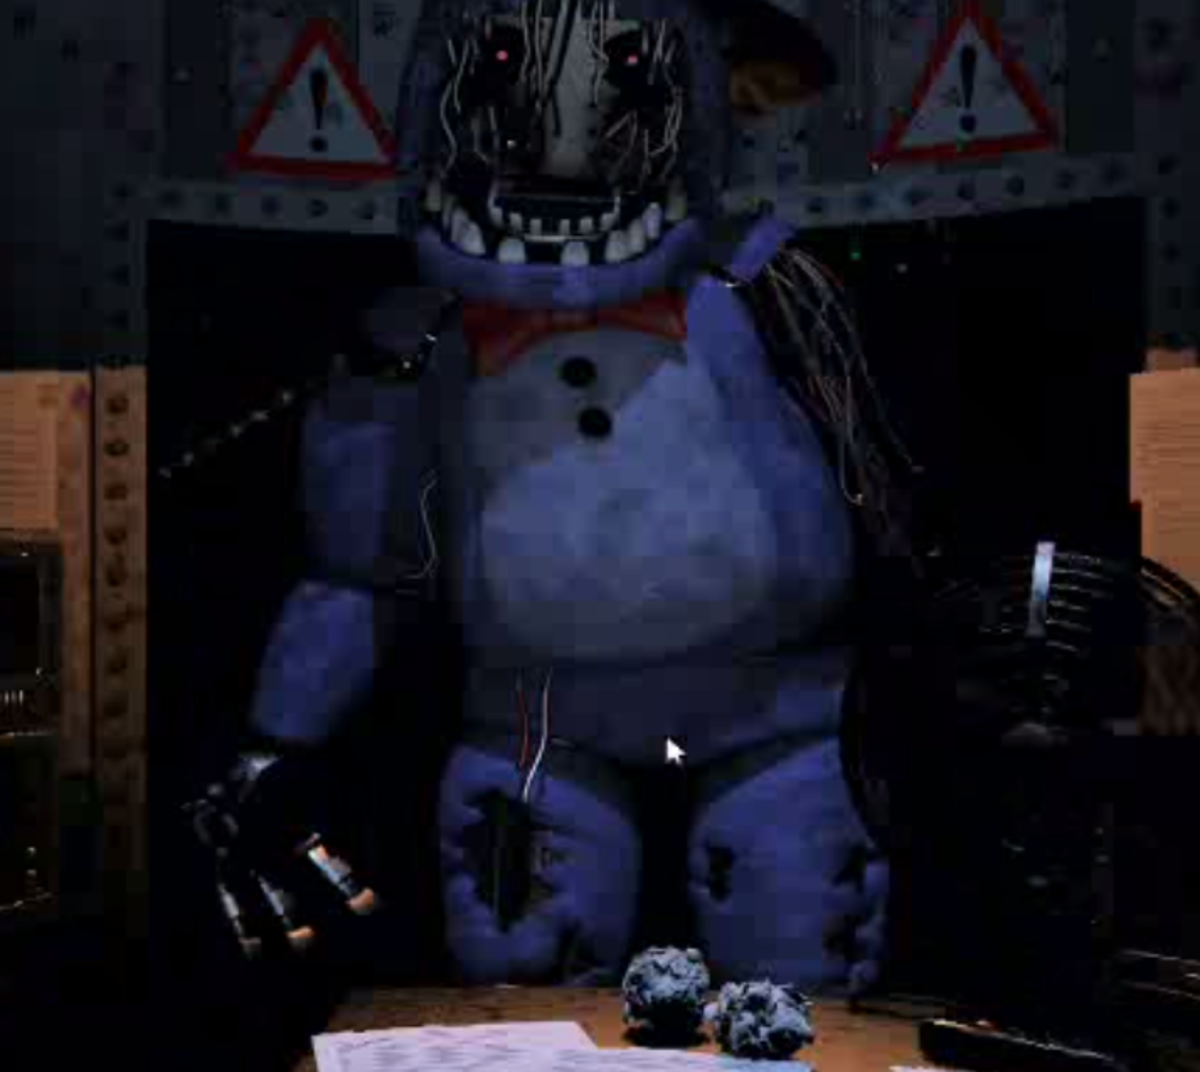 Bonnie hulks over the desk. If you see this screen without putting on the Freddy Fazbear Head, you're probably dead already.